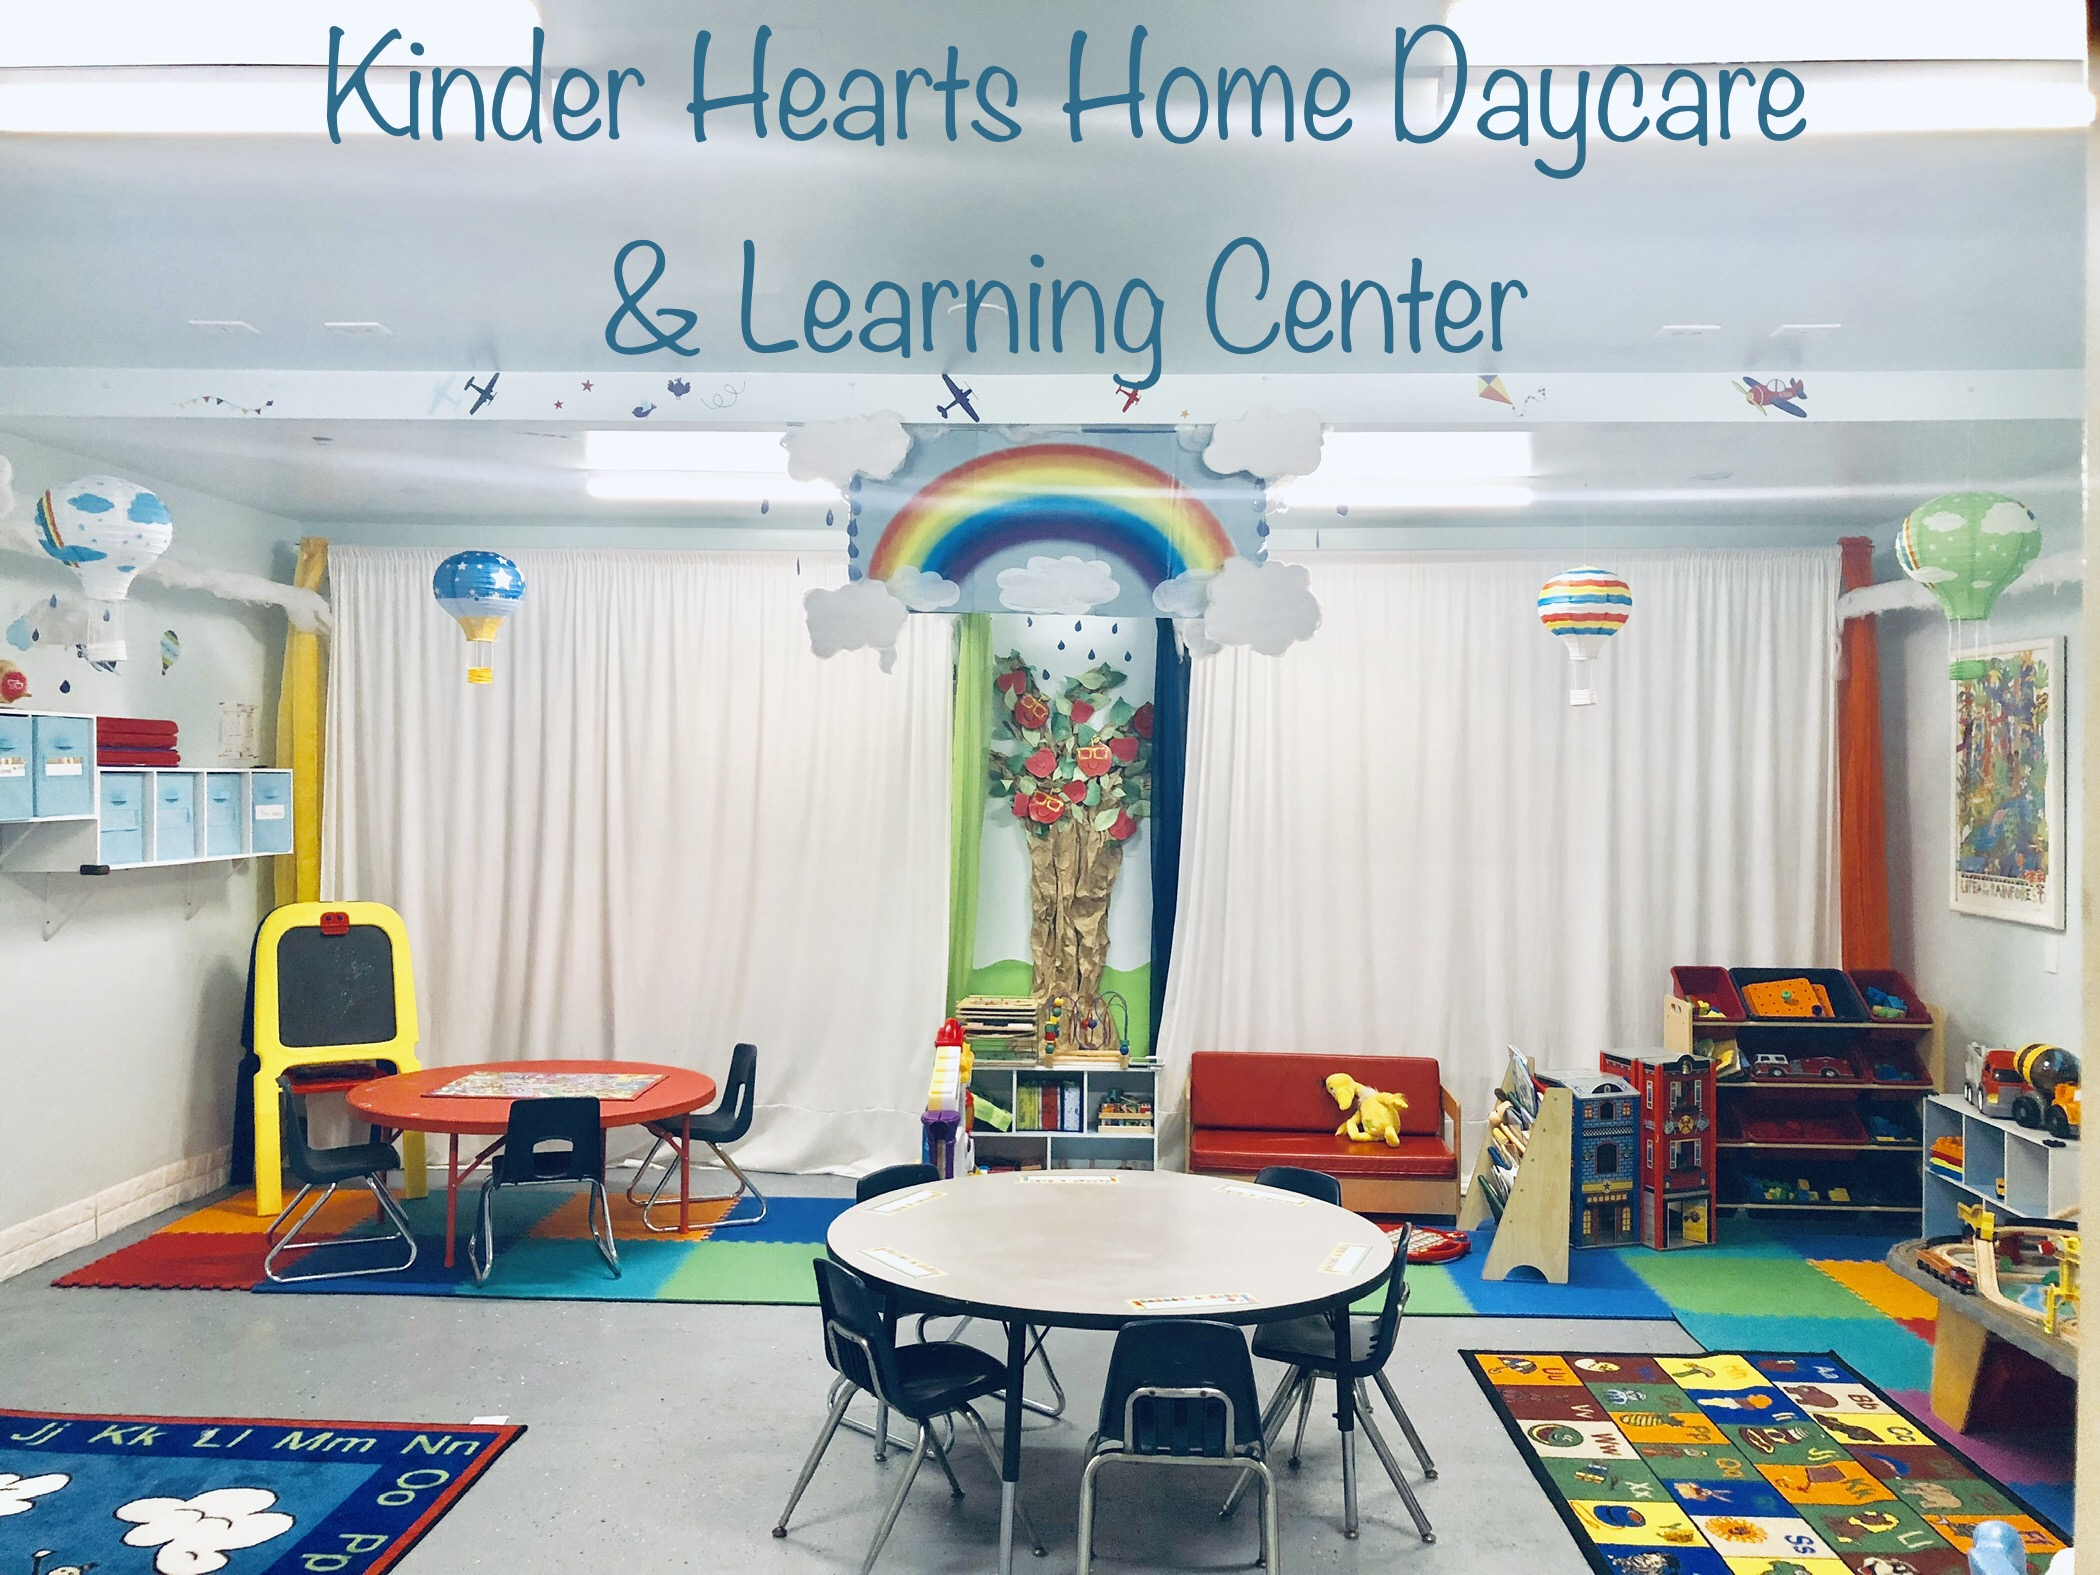 Kinder Hearts Home Daycare & Learning Center